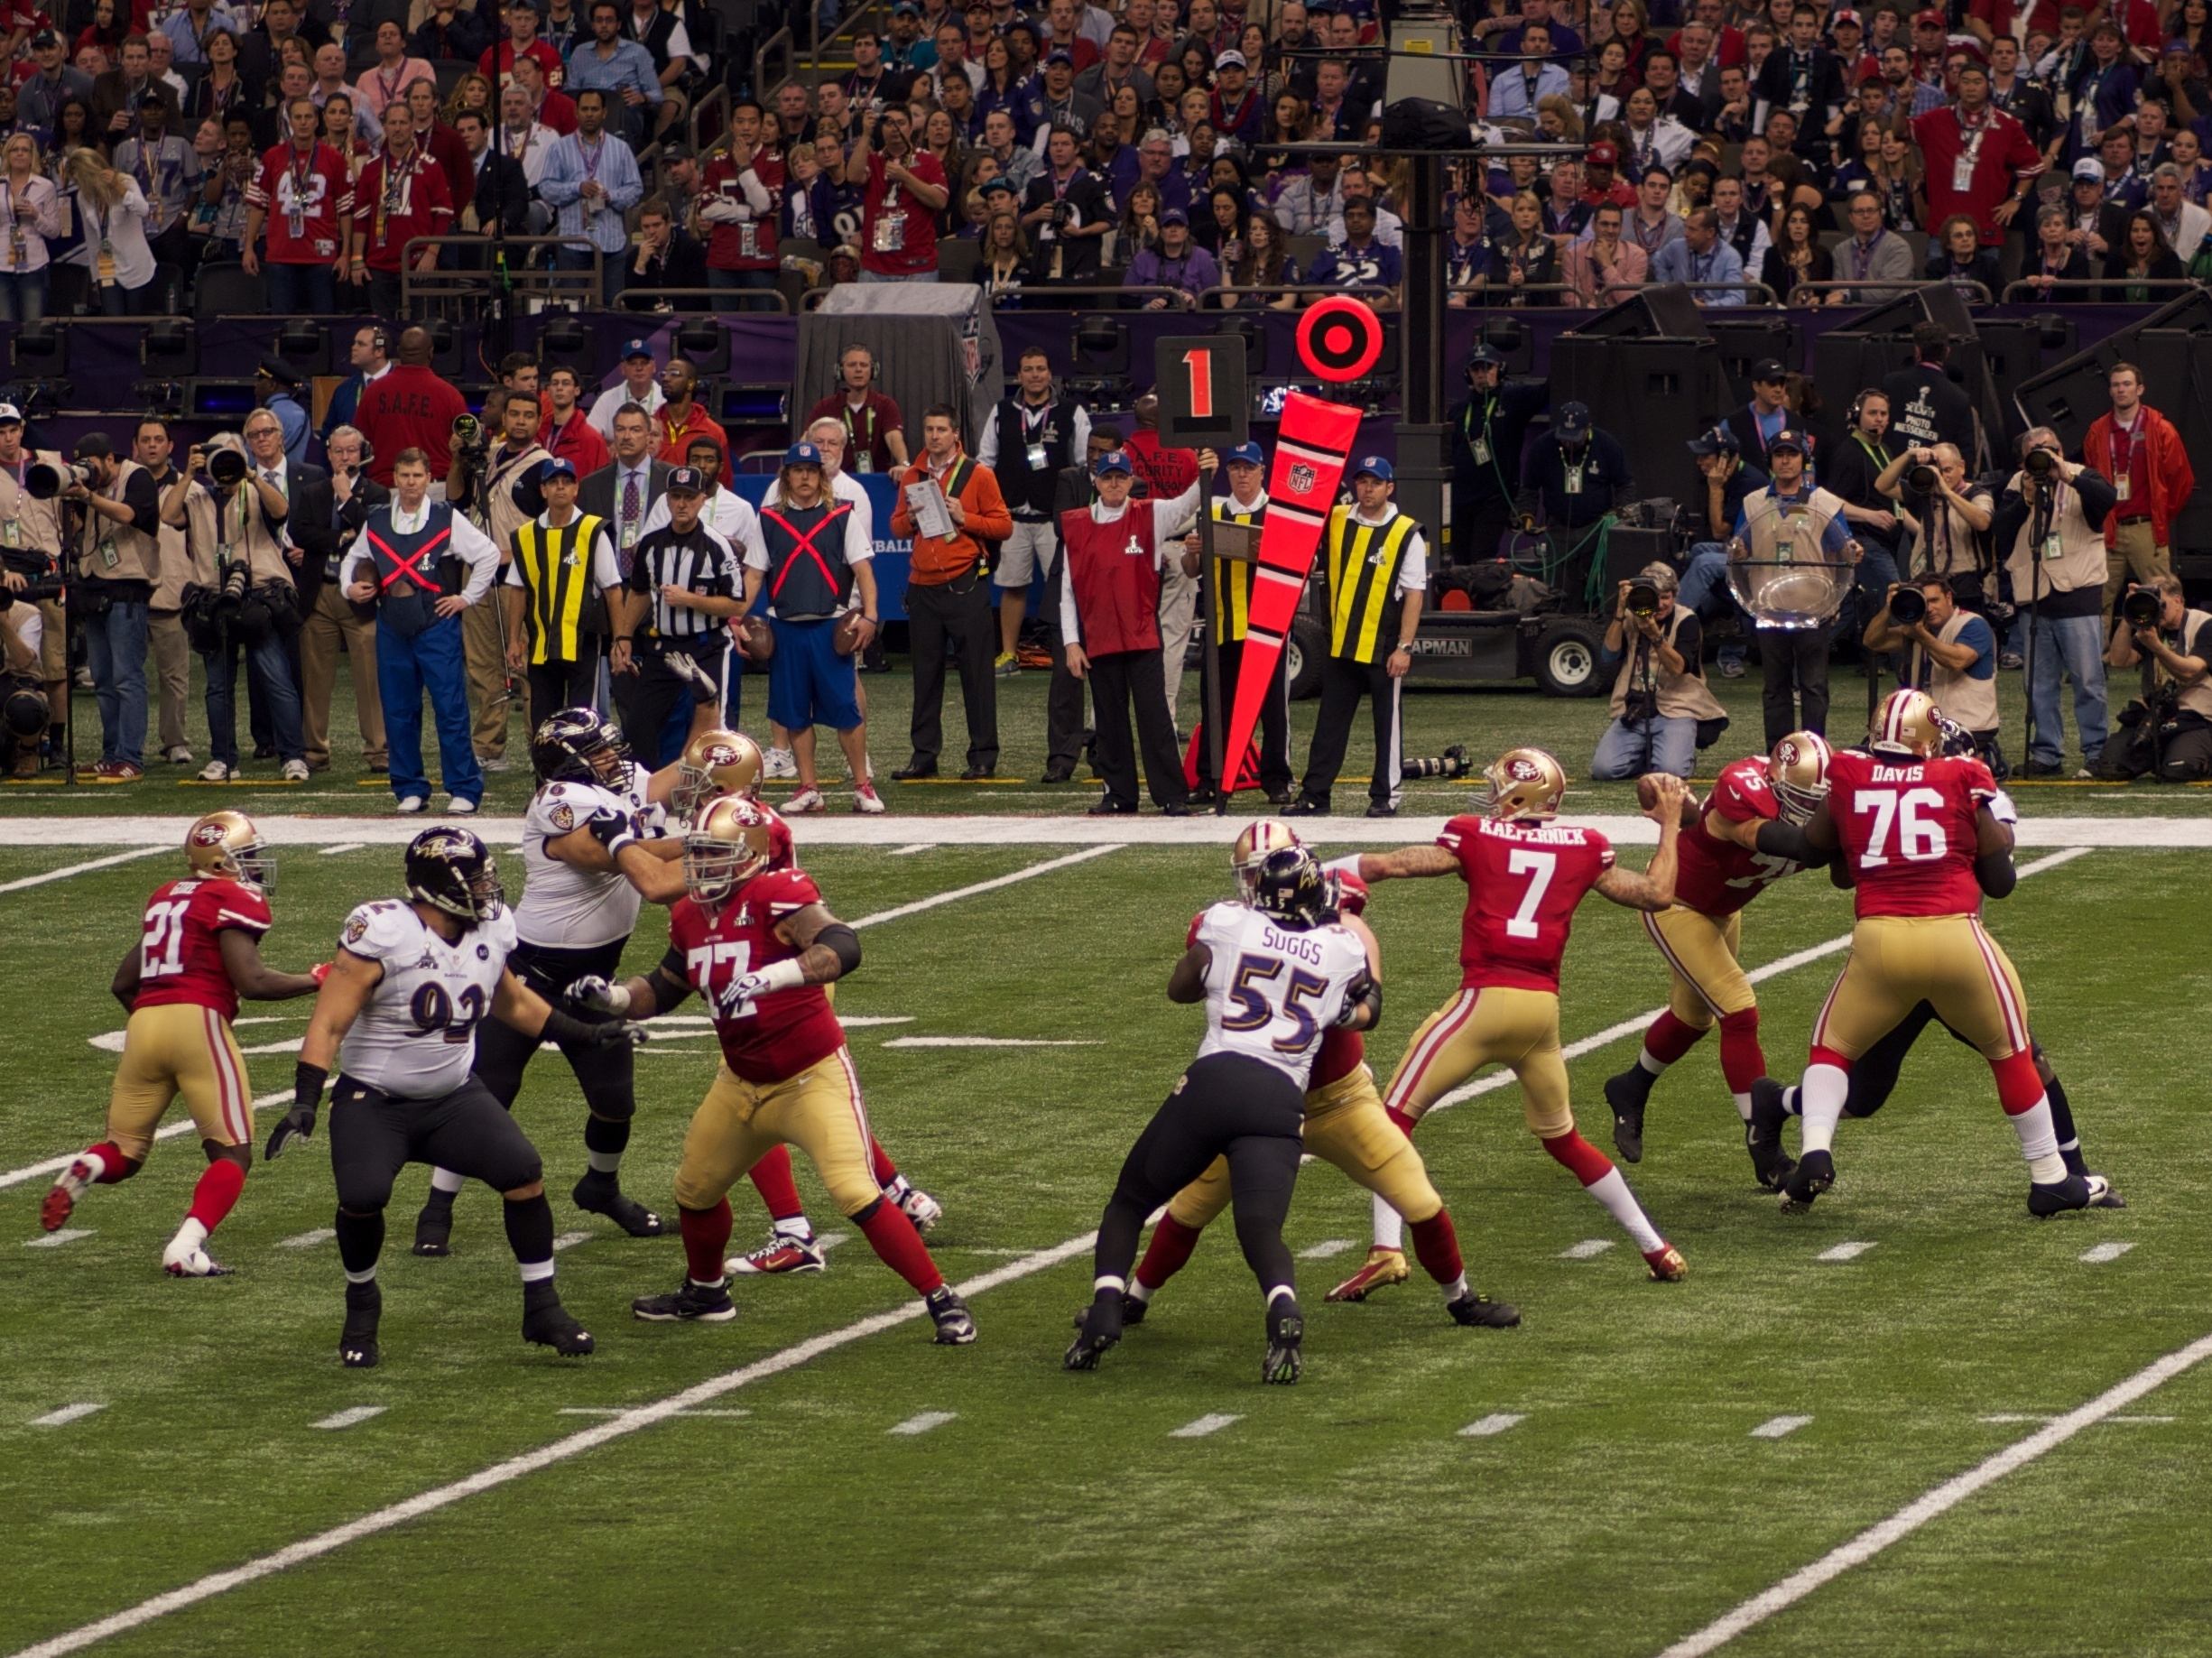 File:colin Kaepernick In Super Bowl Xlvii - Wikimedia with regard to Colin Kaepernick Super Bowl